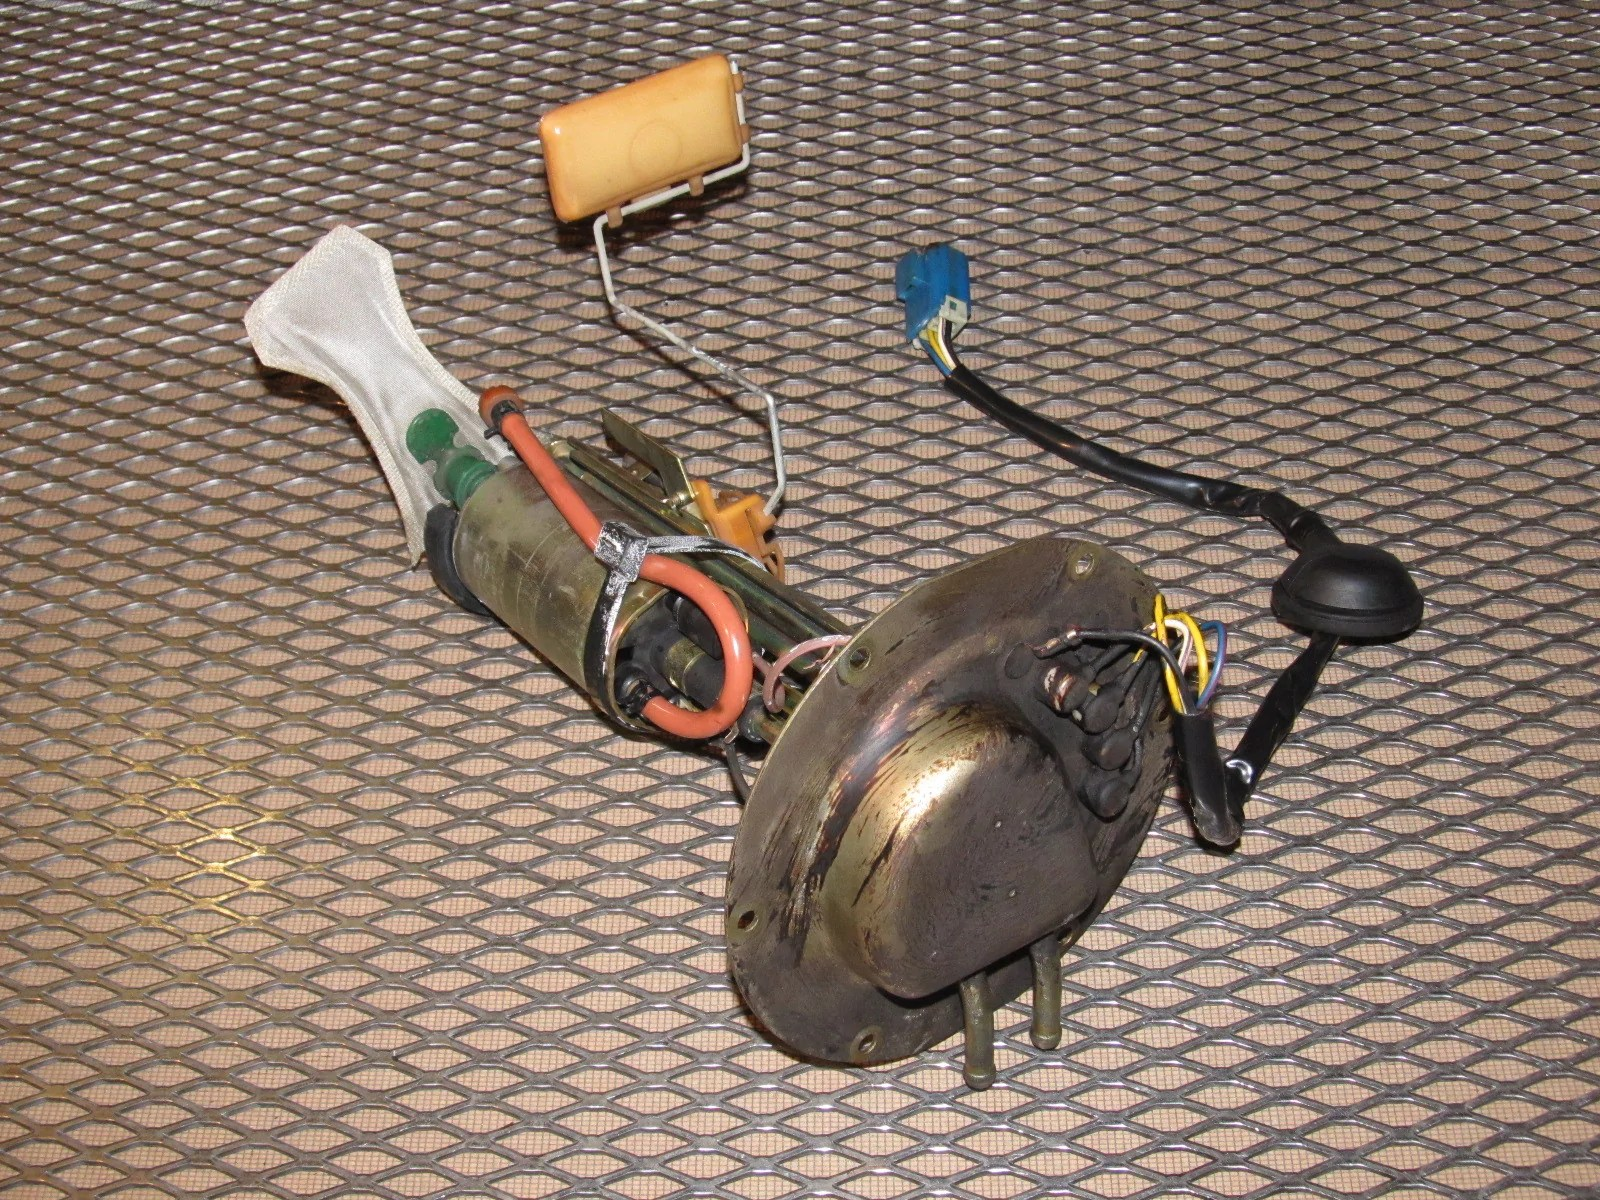 300zx fuel sending unit diagram 2013 tacoma wiring 91 92 93 94 nissan 240sx oem pump and